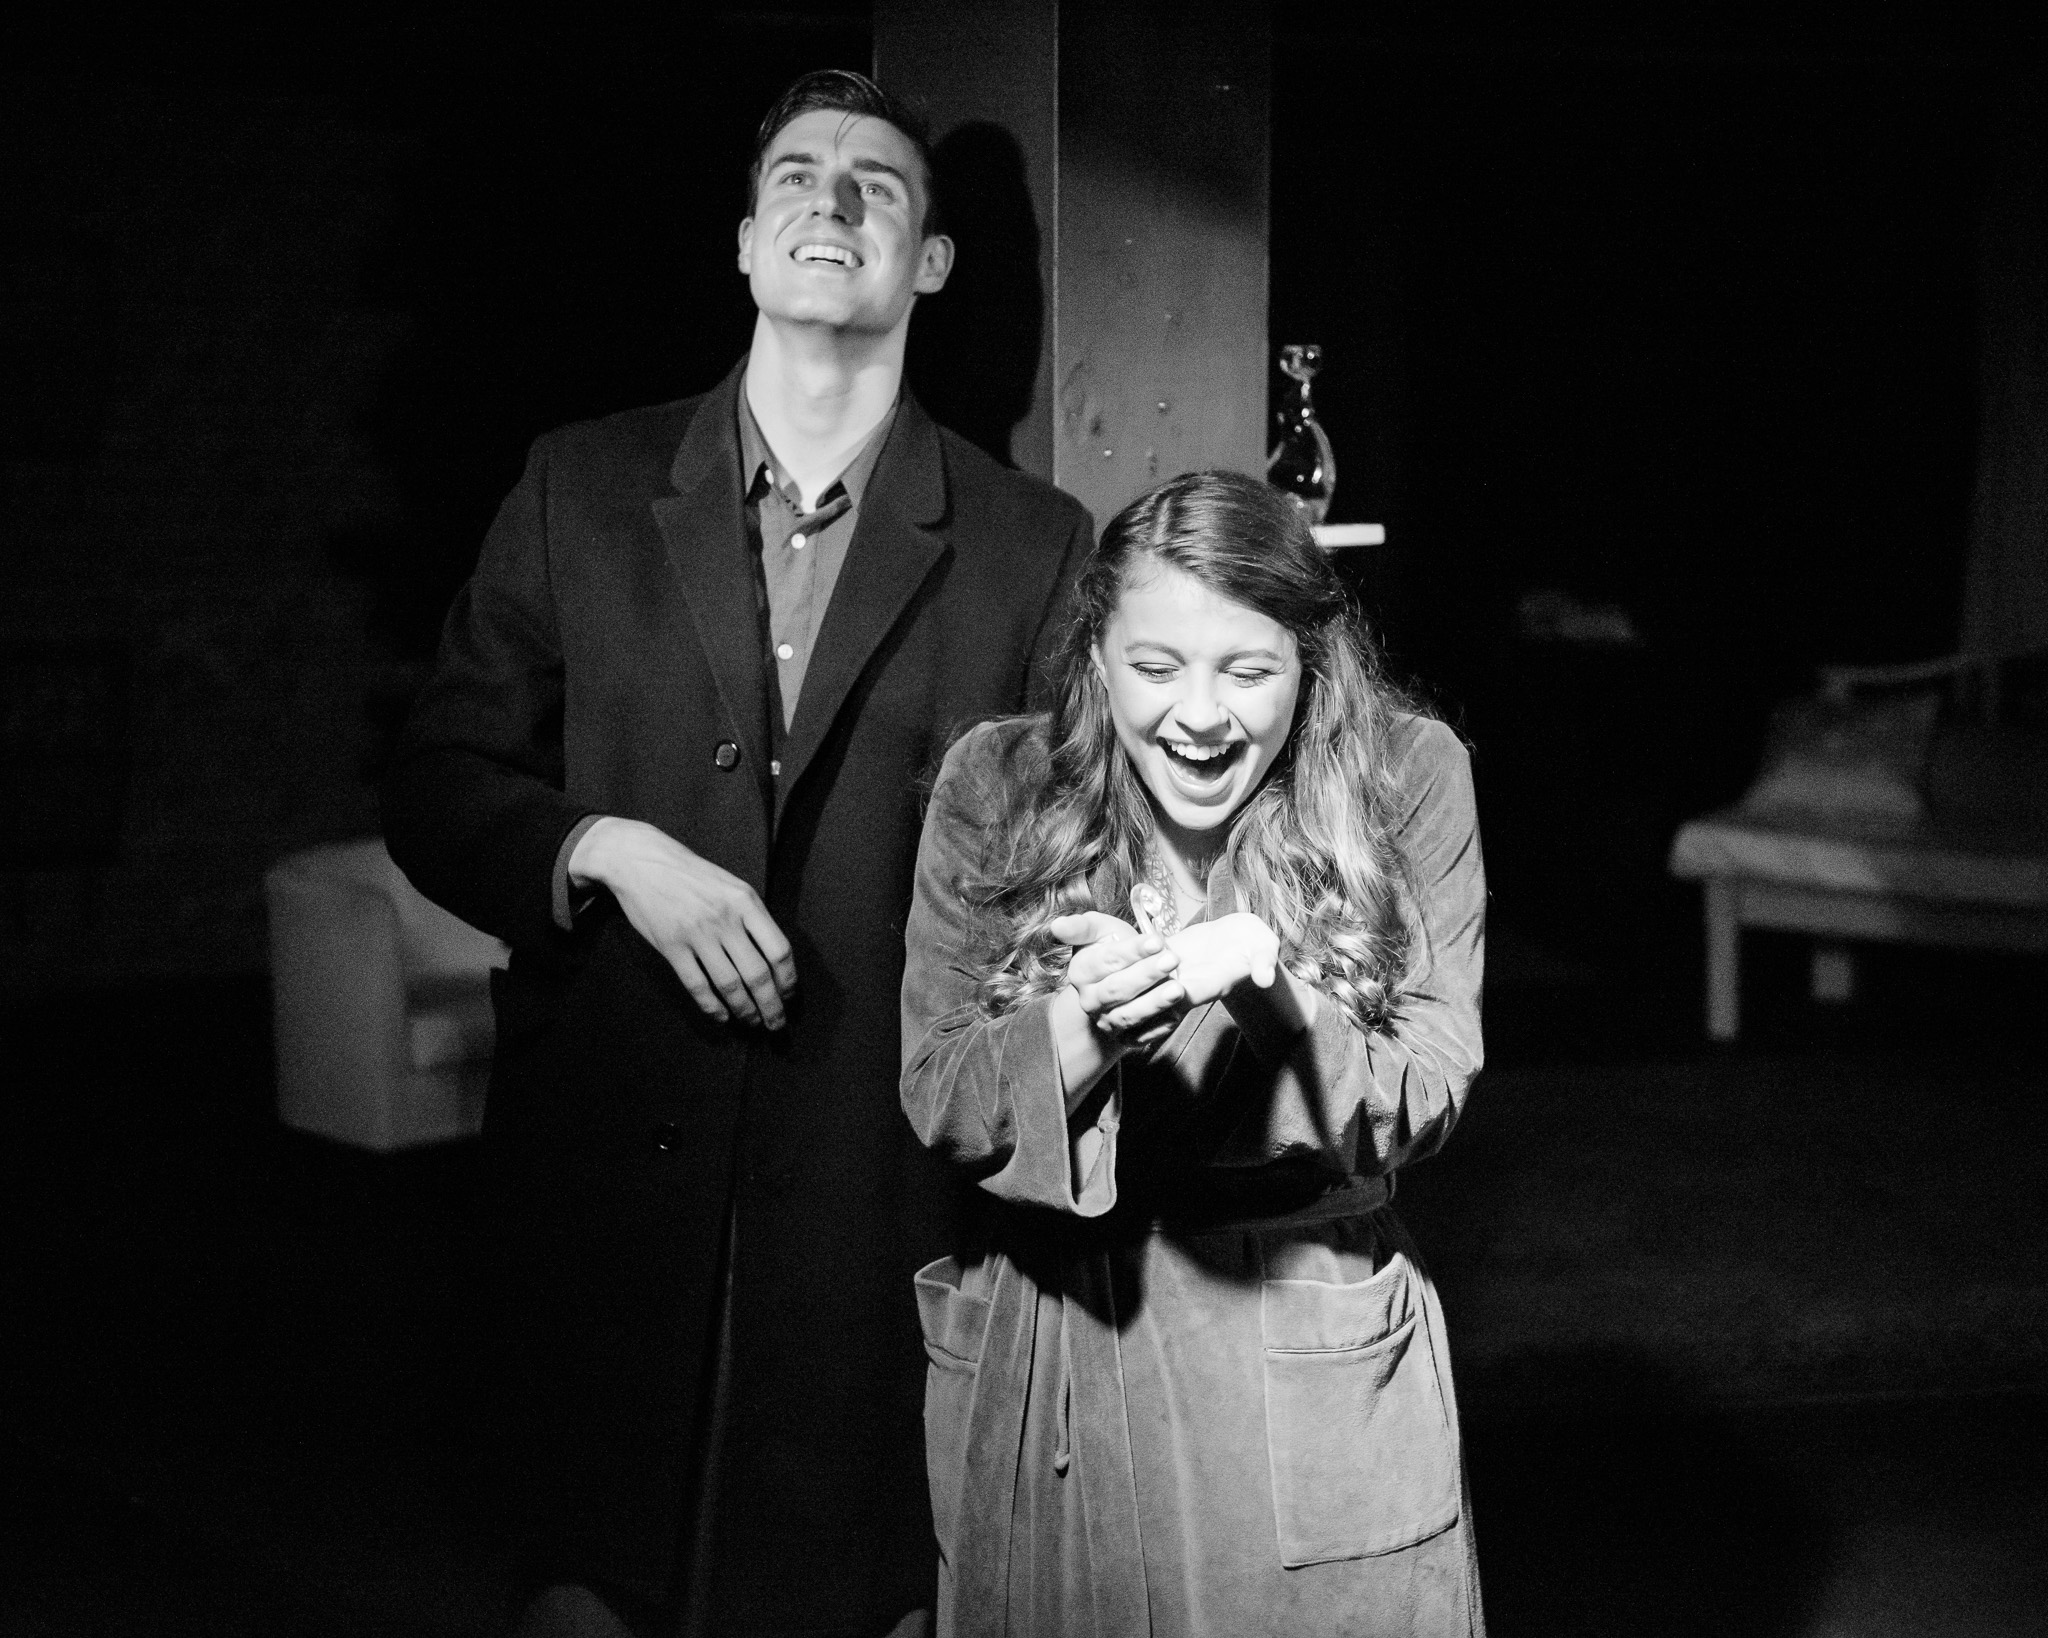 Jacob Klick as Tom and Claire MacMaster as Laura. Photo by John Ordean